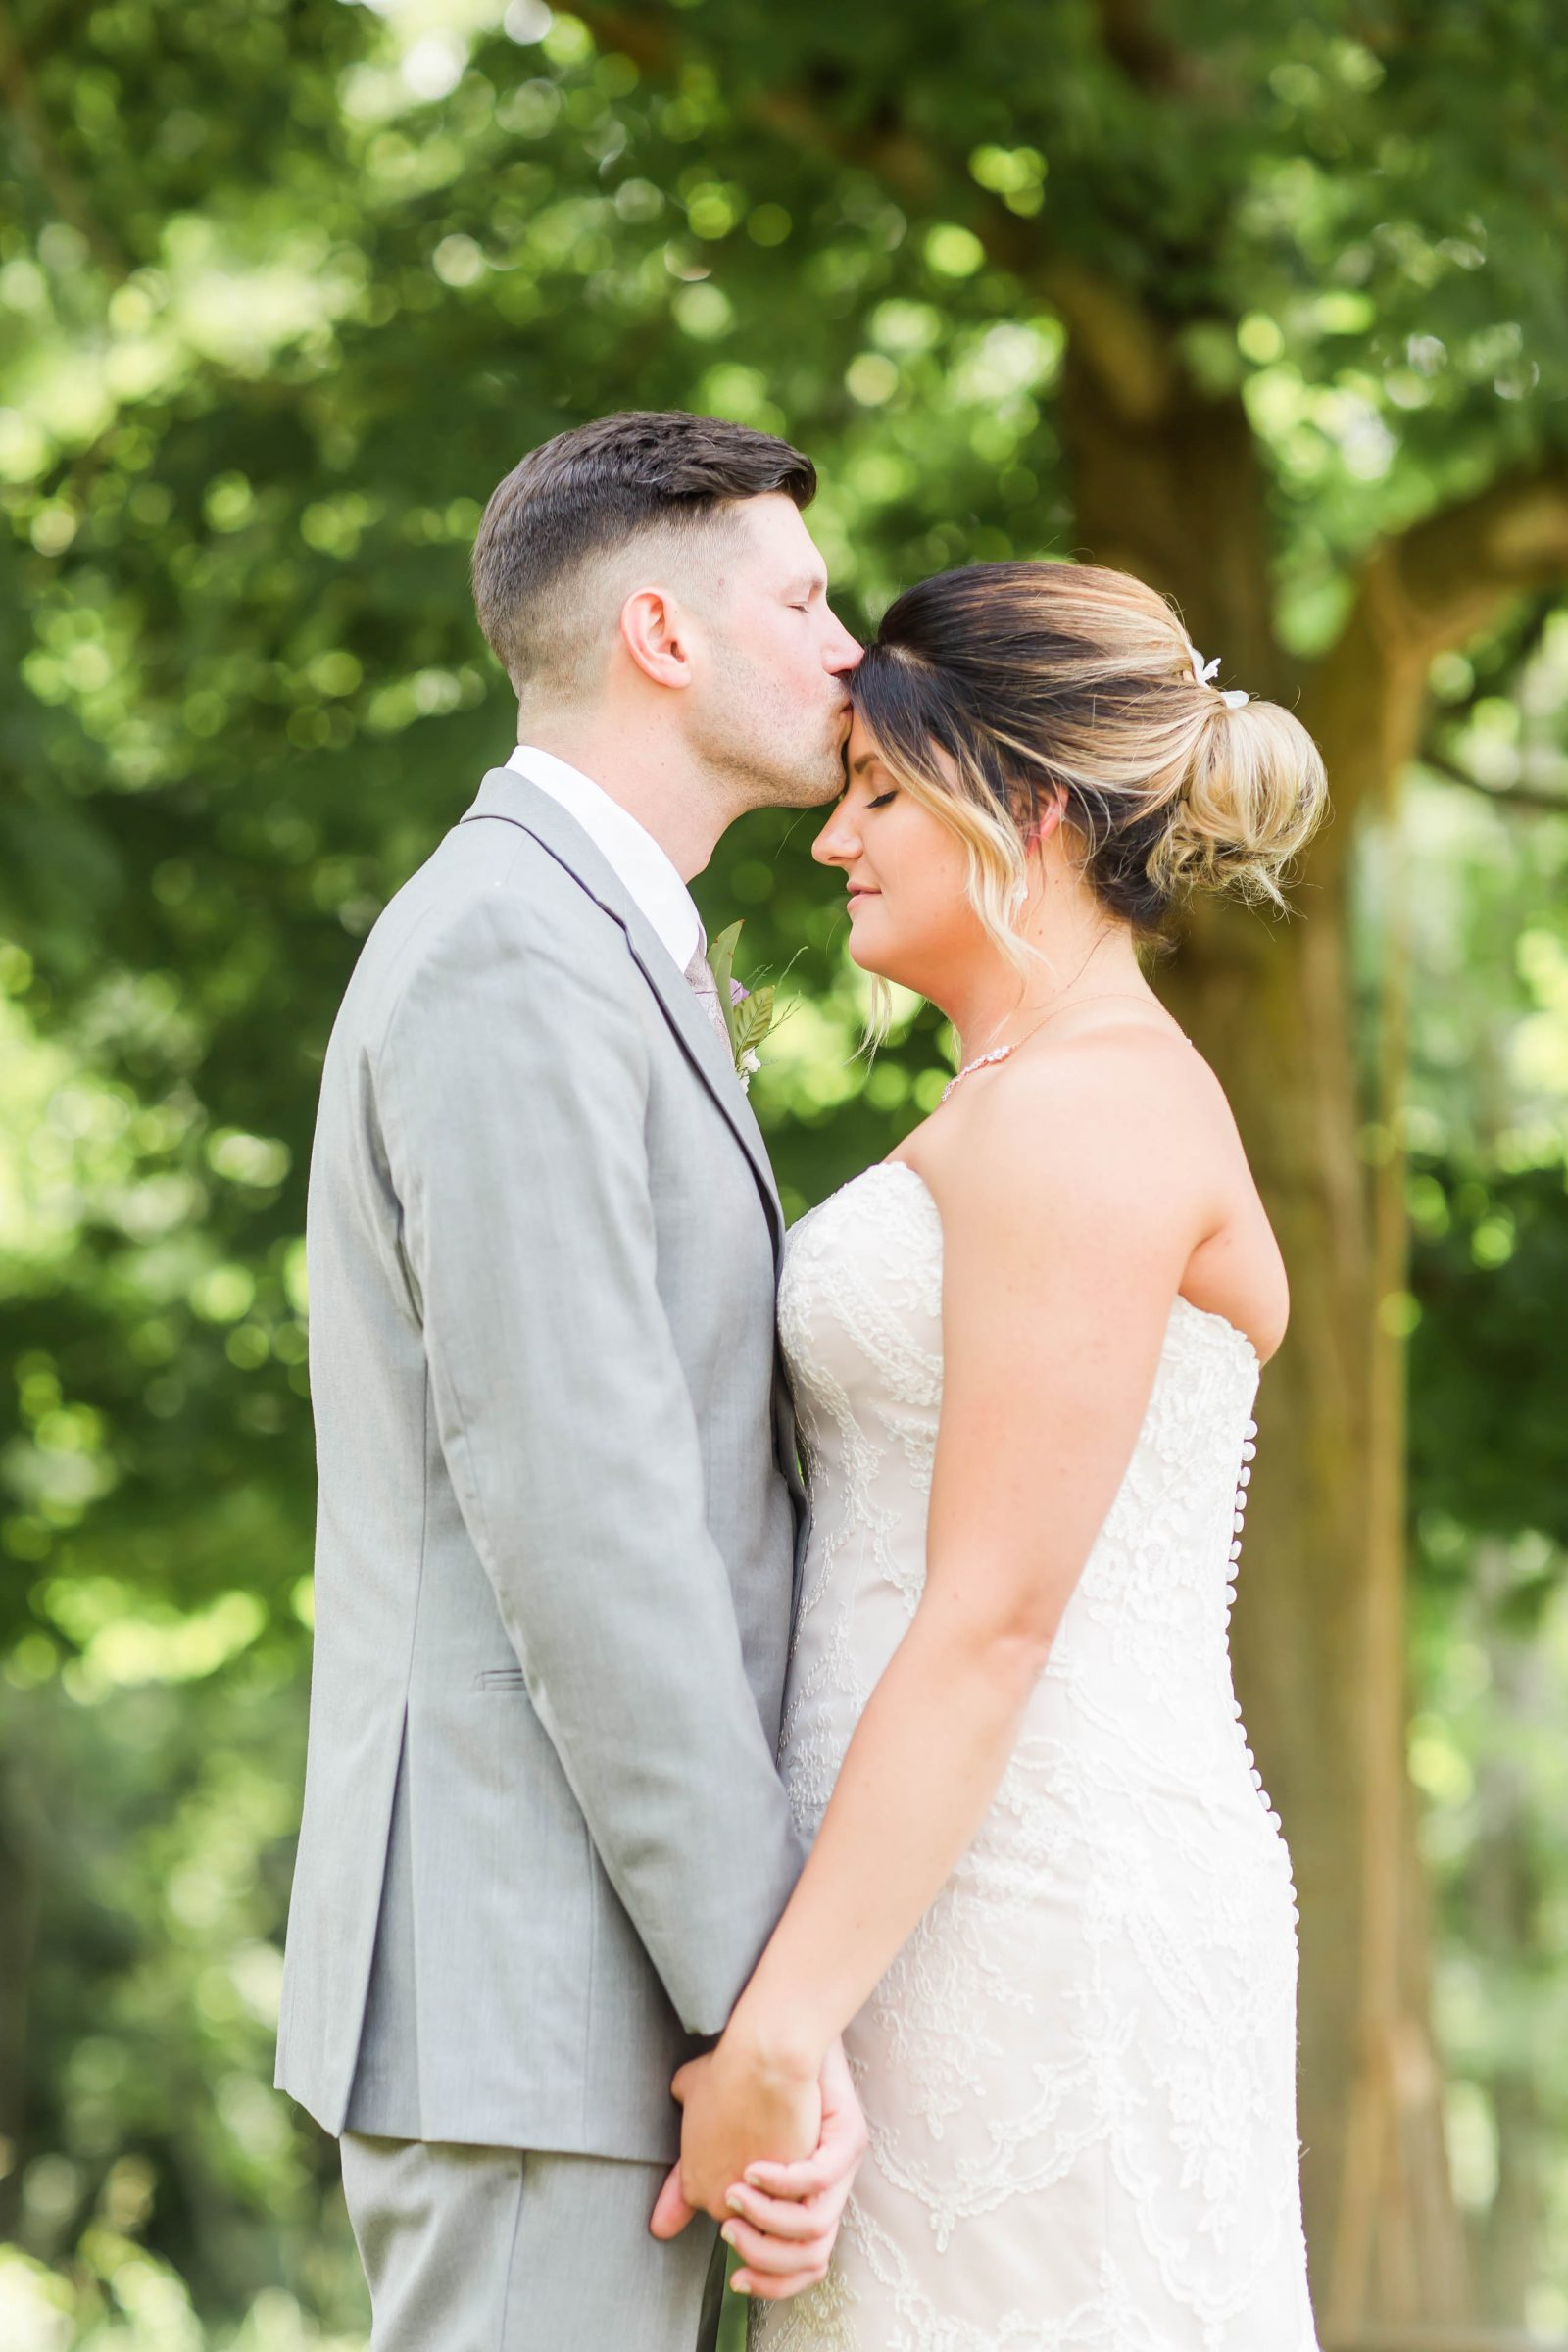 rivercrest-farm-summer-wedding-loren-jackson-photography-37